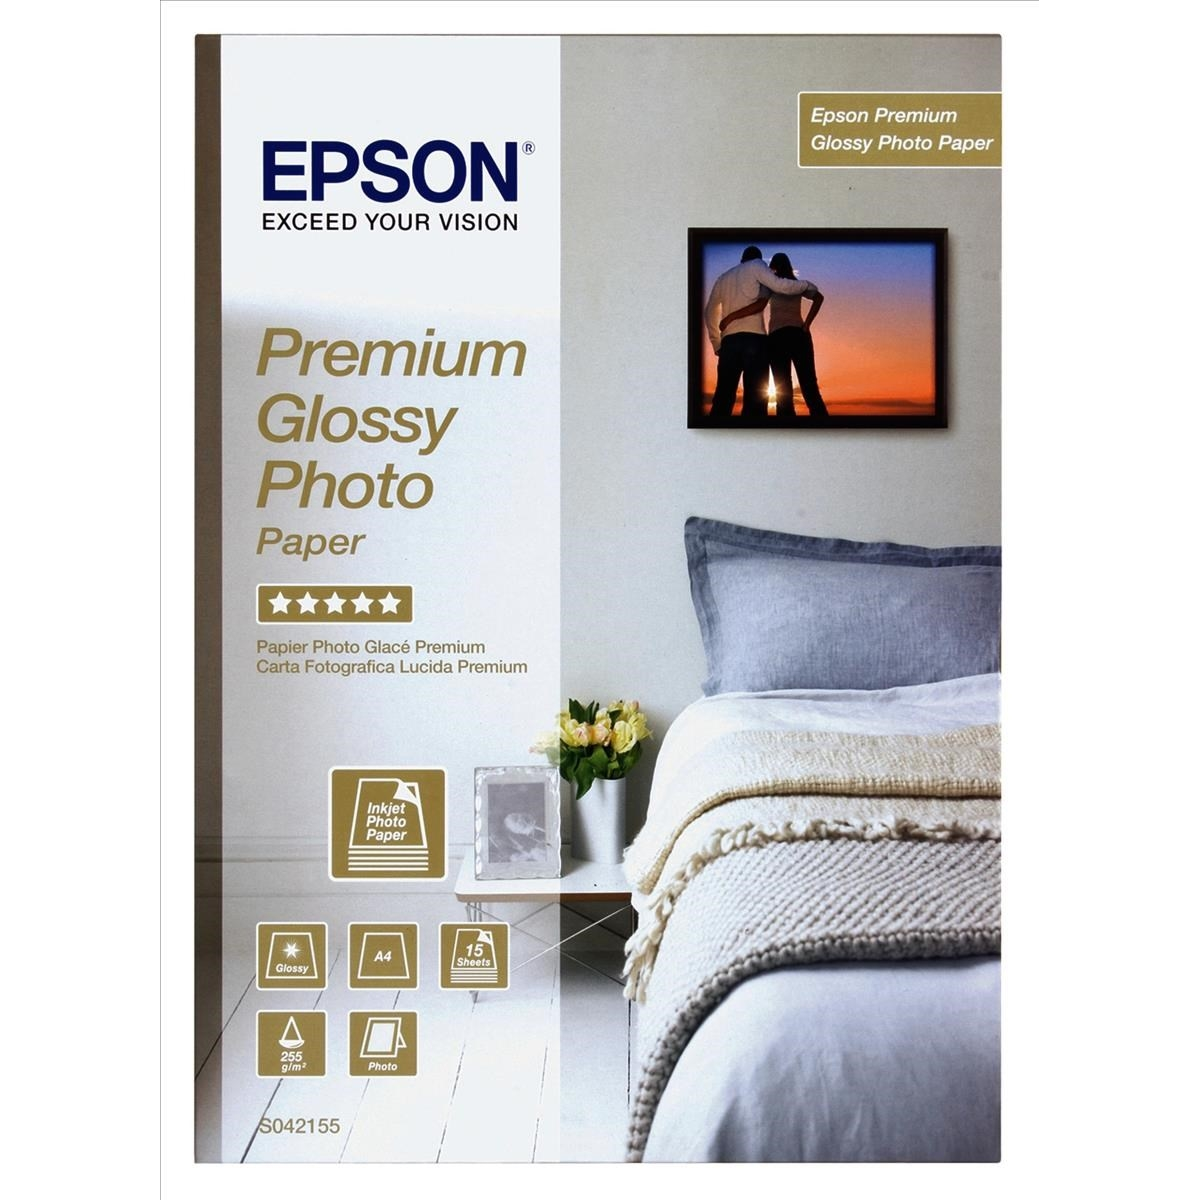 Original Epson S042155 255gsm A4 Photo Paper - 15 Sheets (C13S042155)